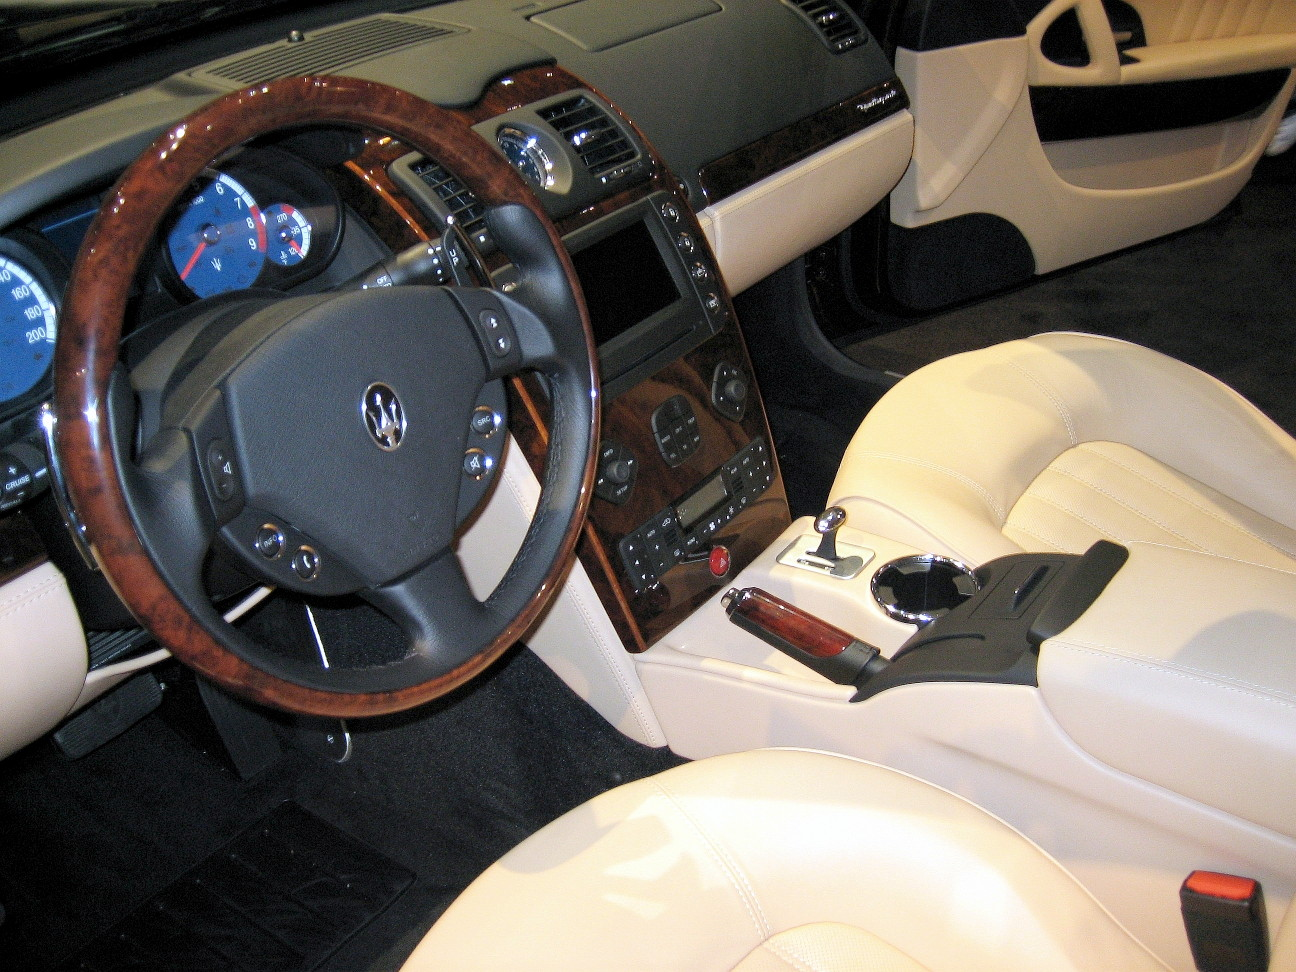 Maserati+quattroporte+interior+photos